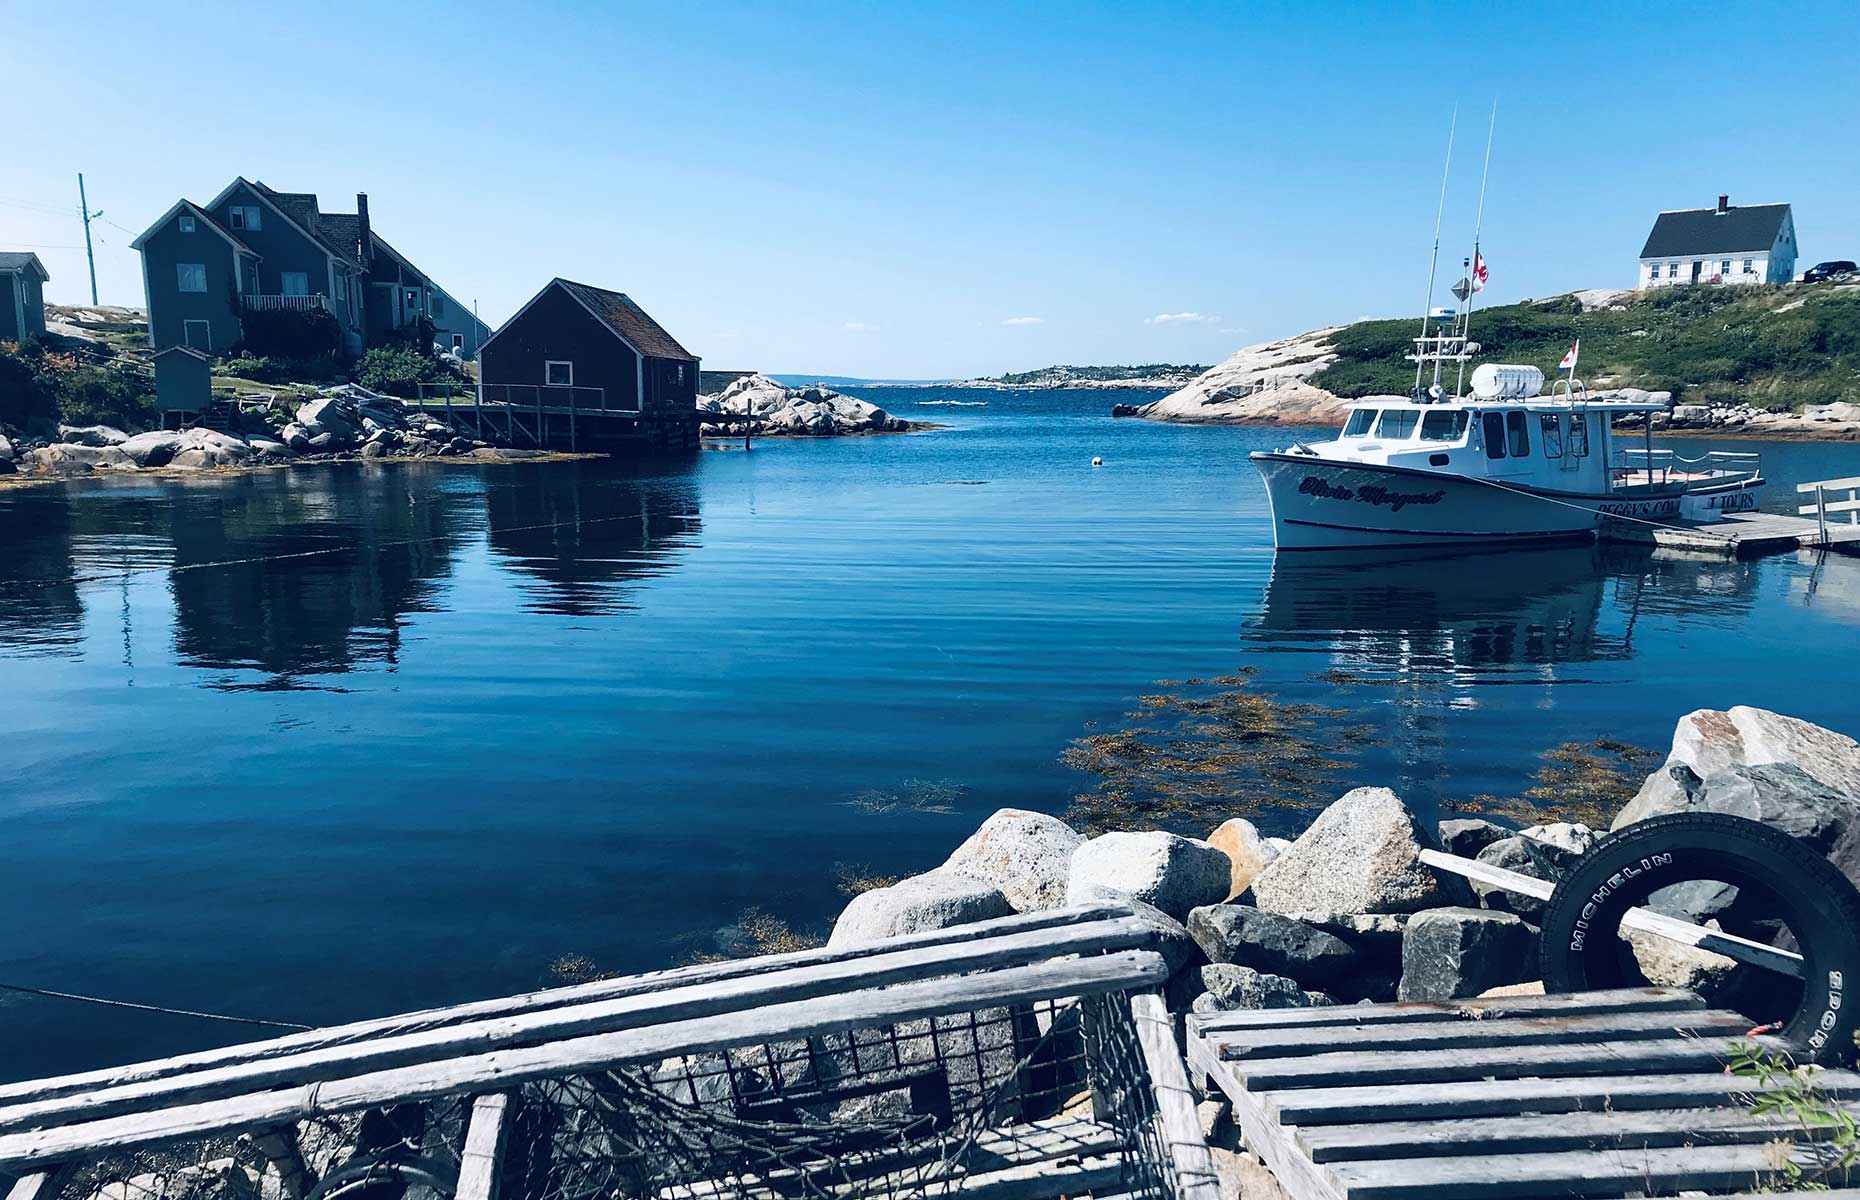 Peggy's Cove, is a working fishing village in Nova Scotia